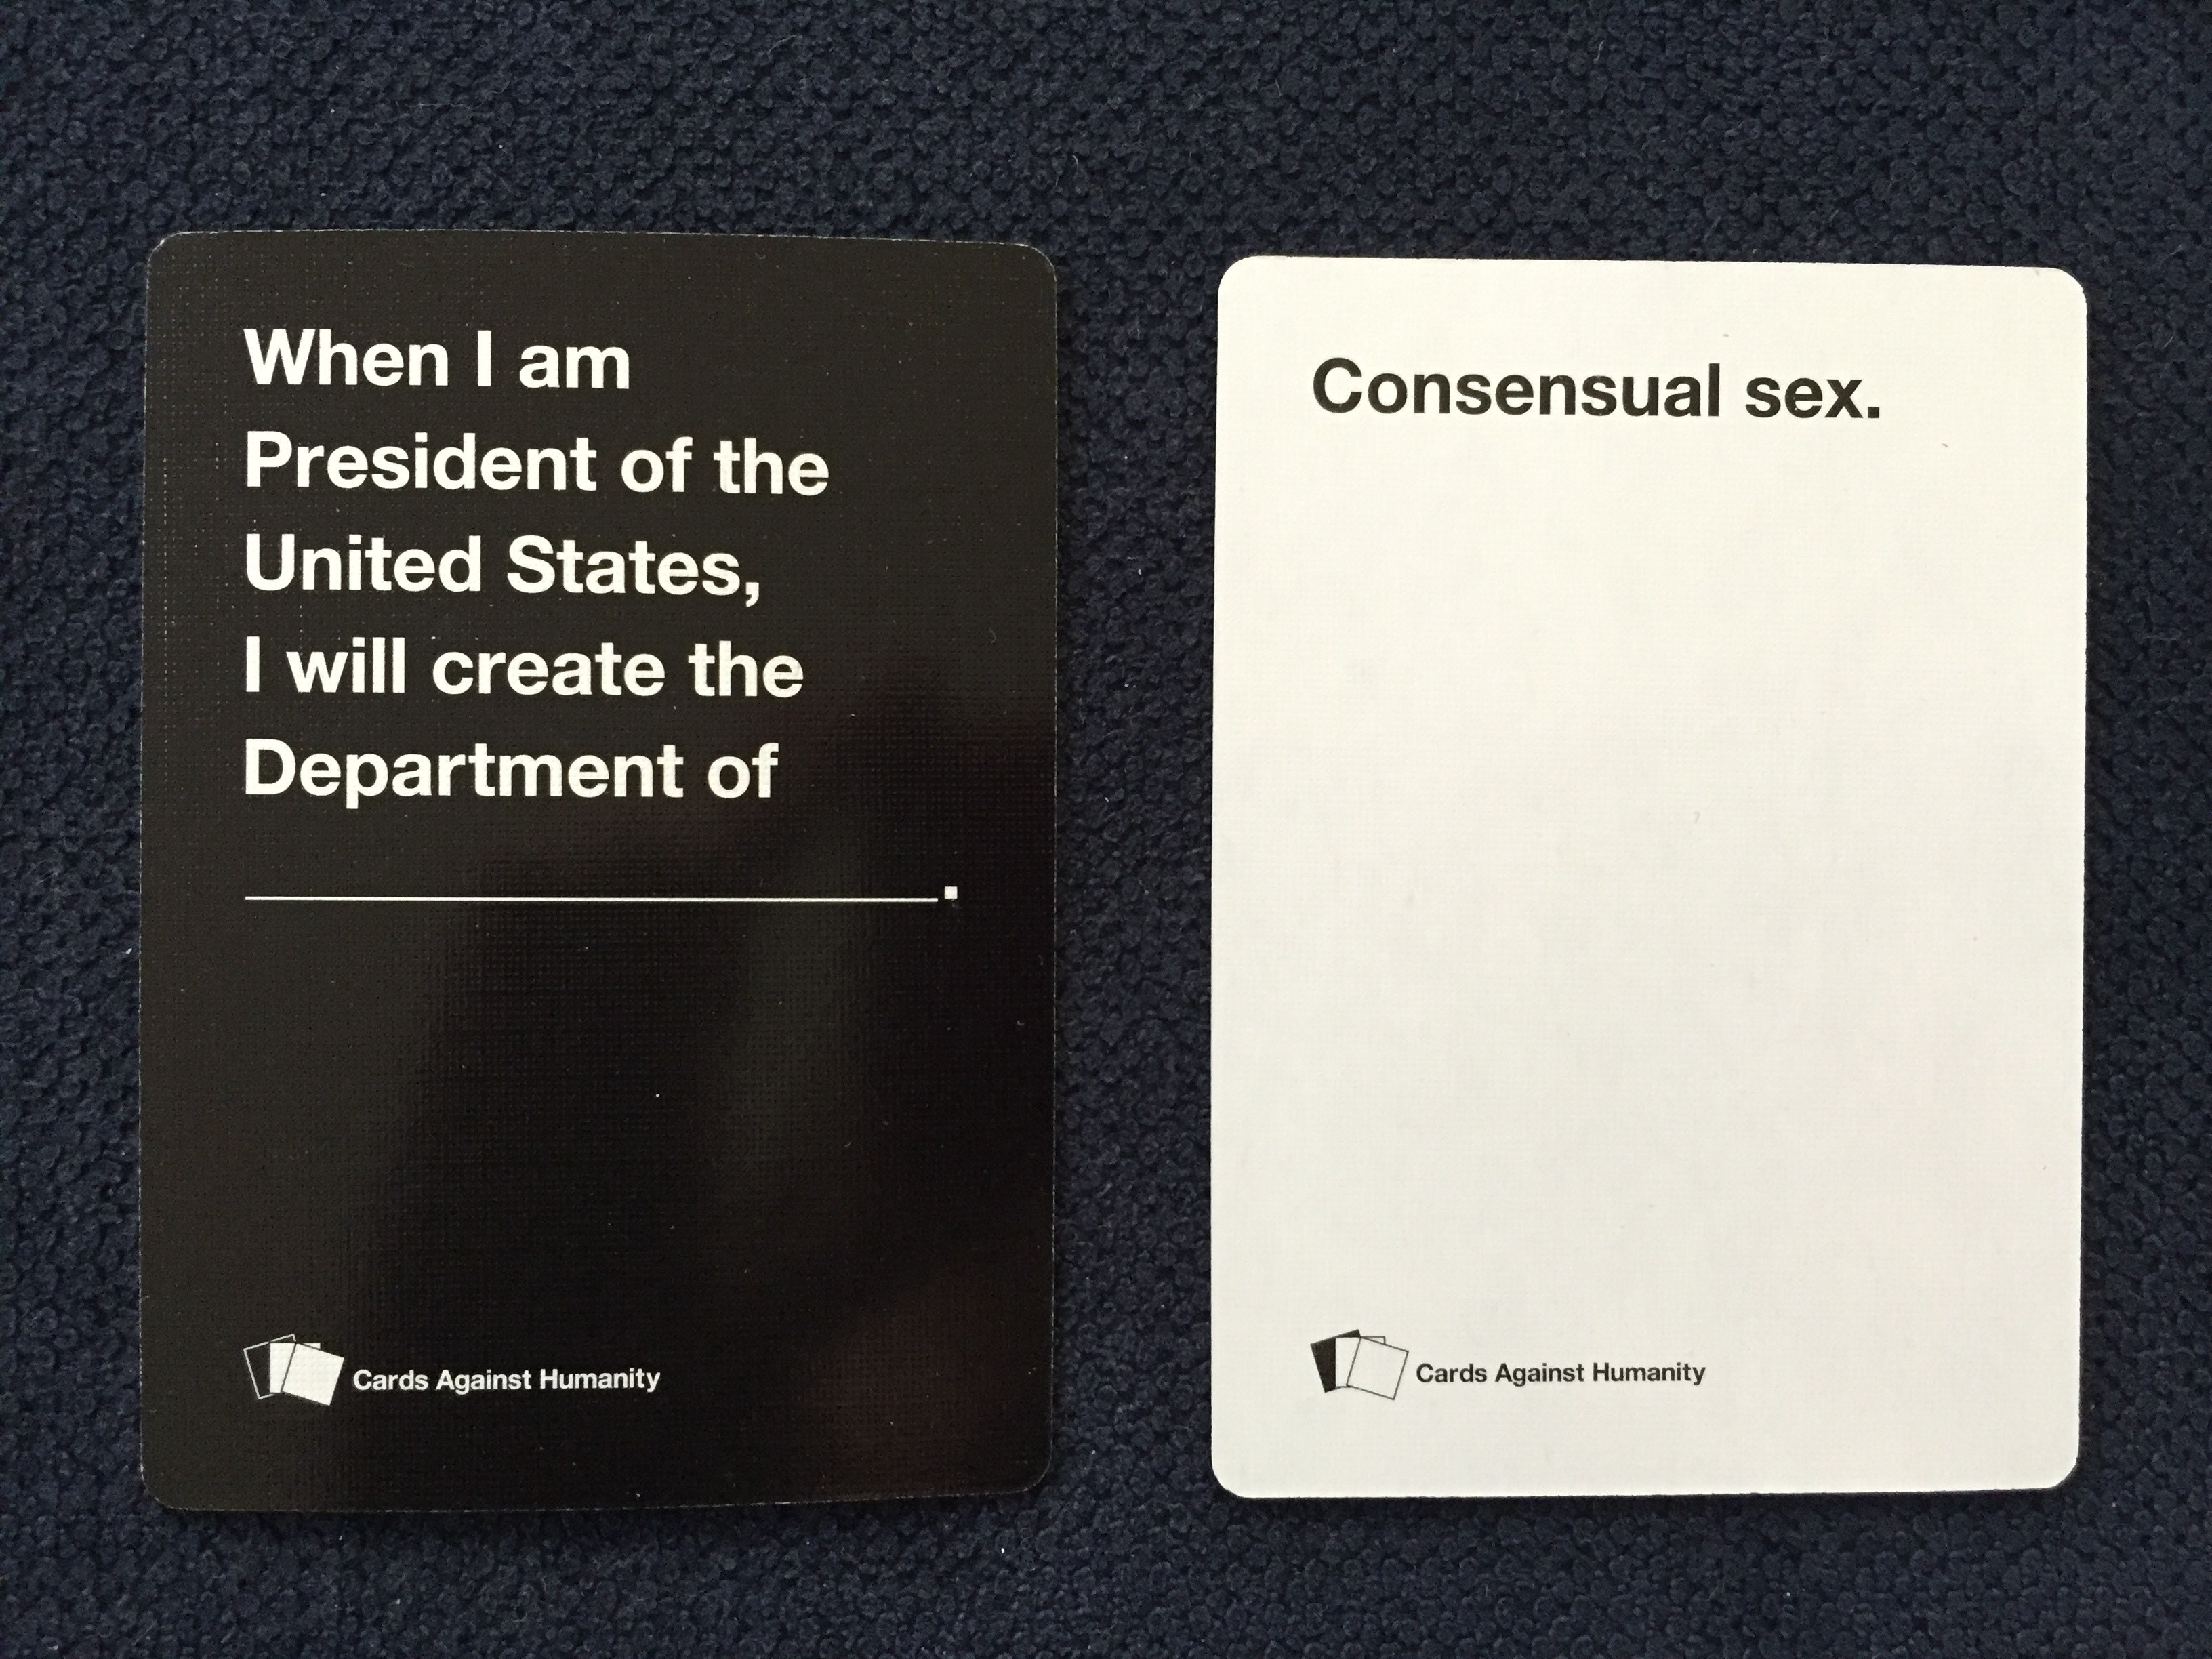 Sexually transmitted diseases cards against humanity